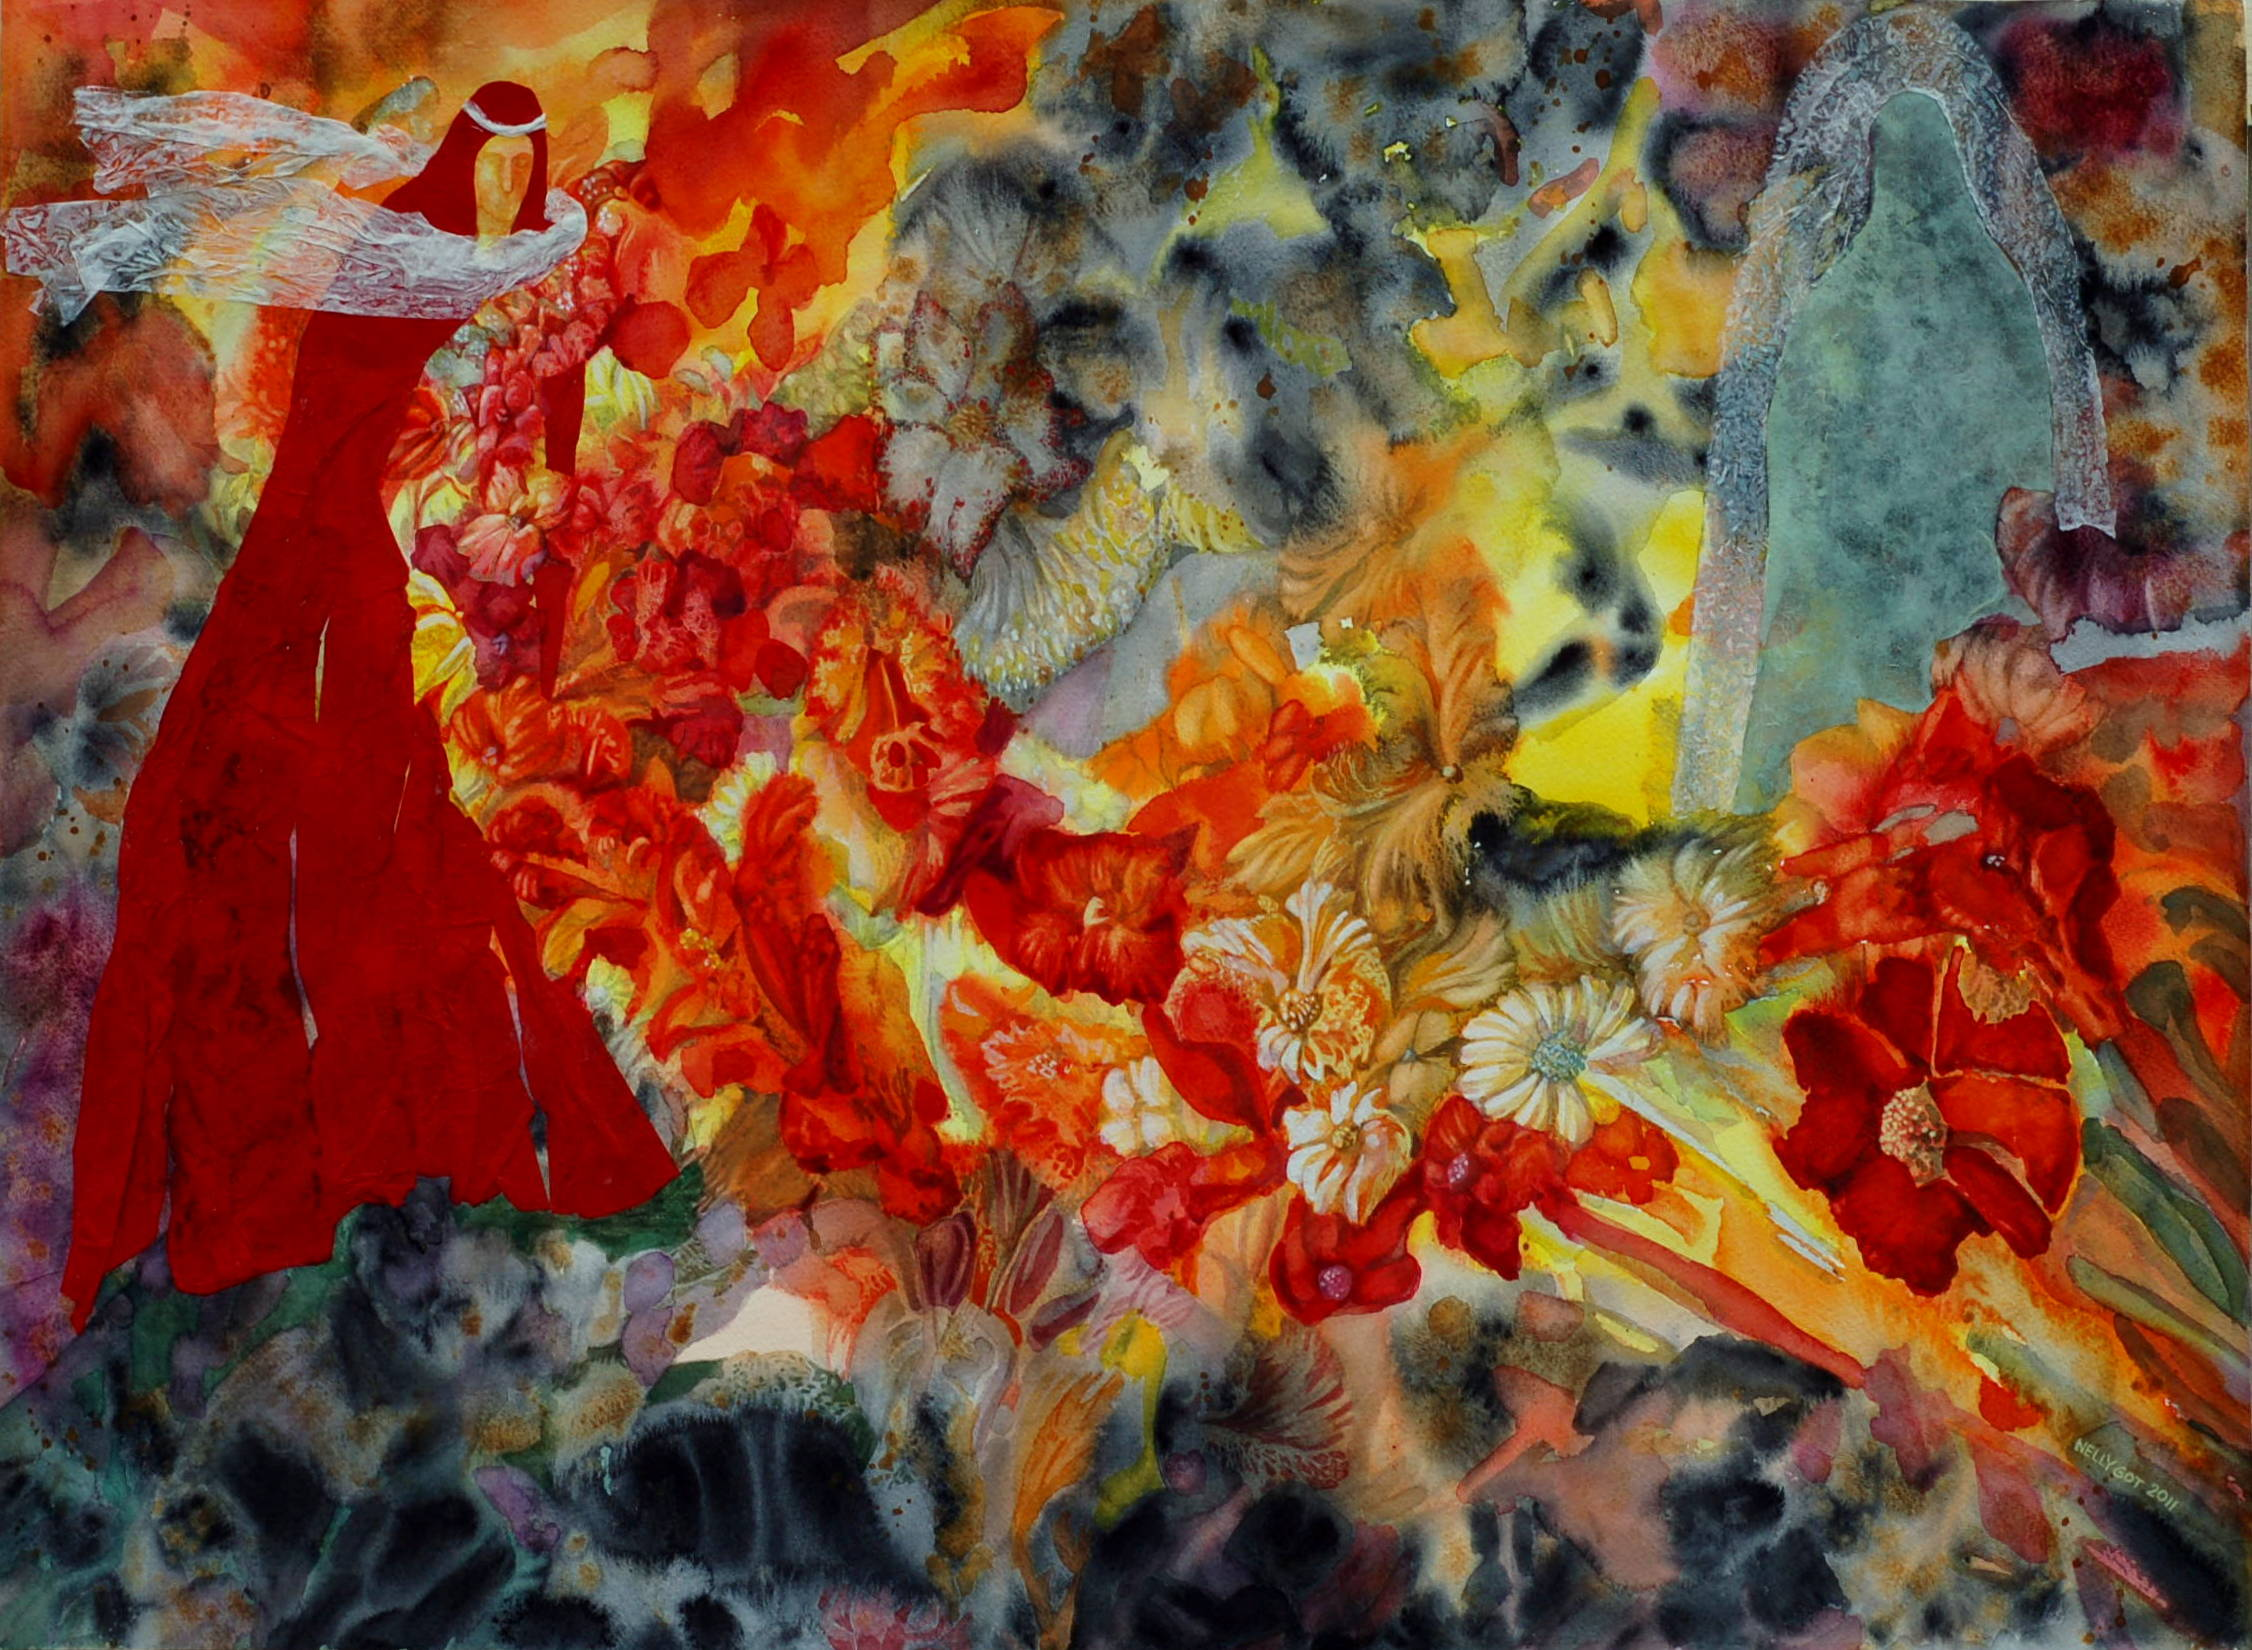 Palm Sunday artwork by Nelly Gocheva - art listed for sale on Artplode